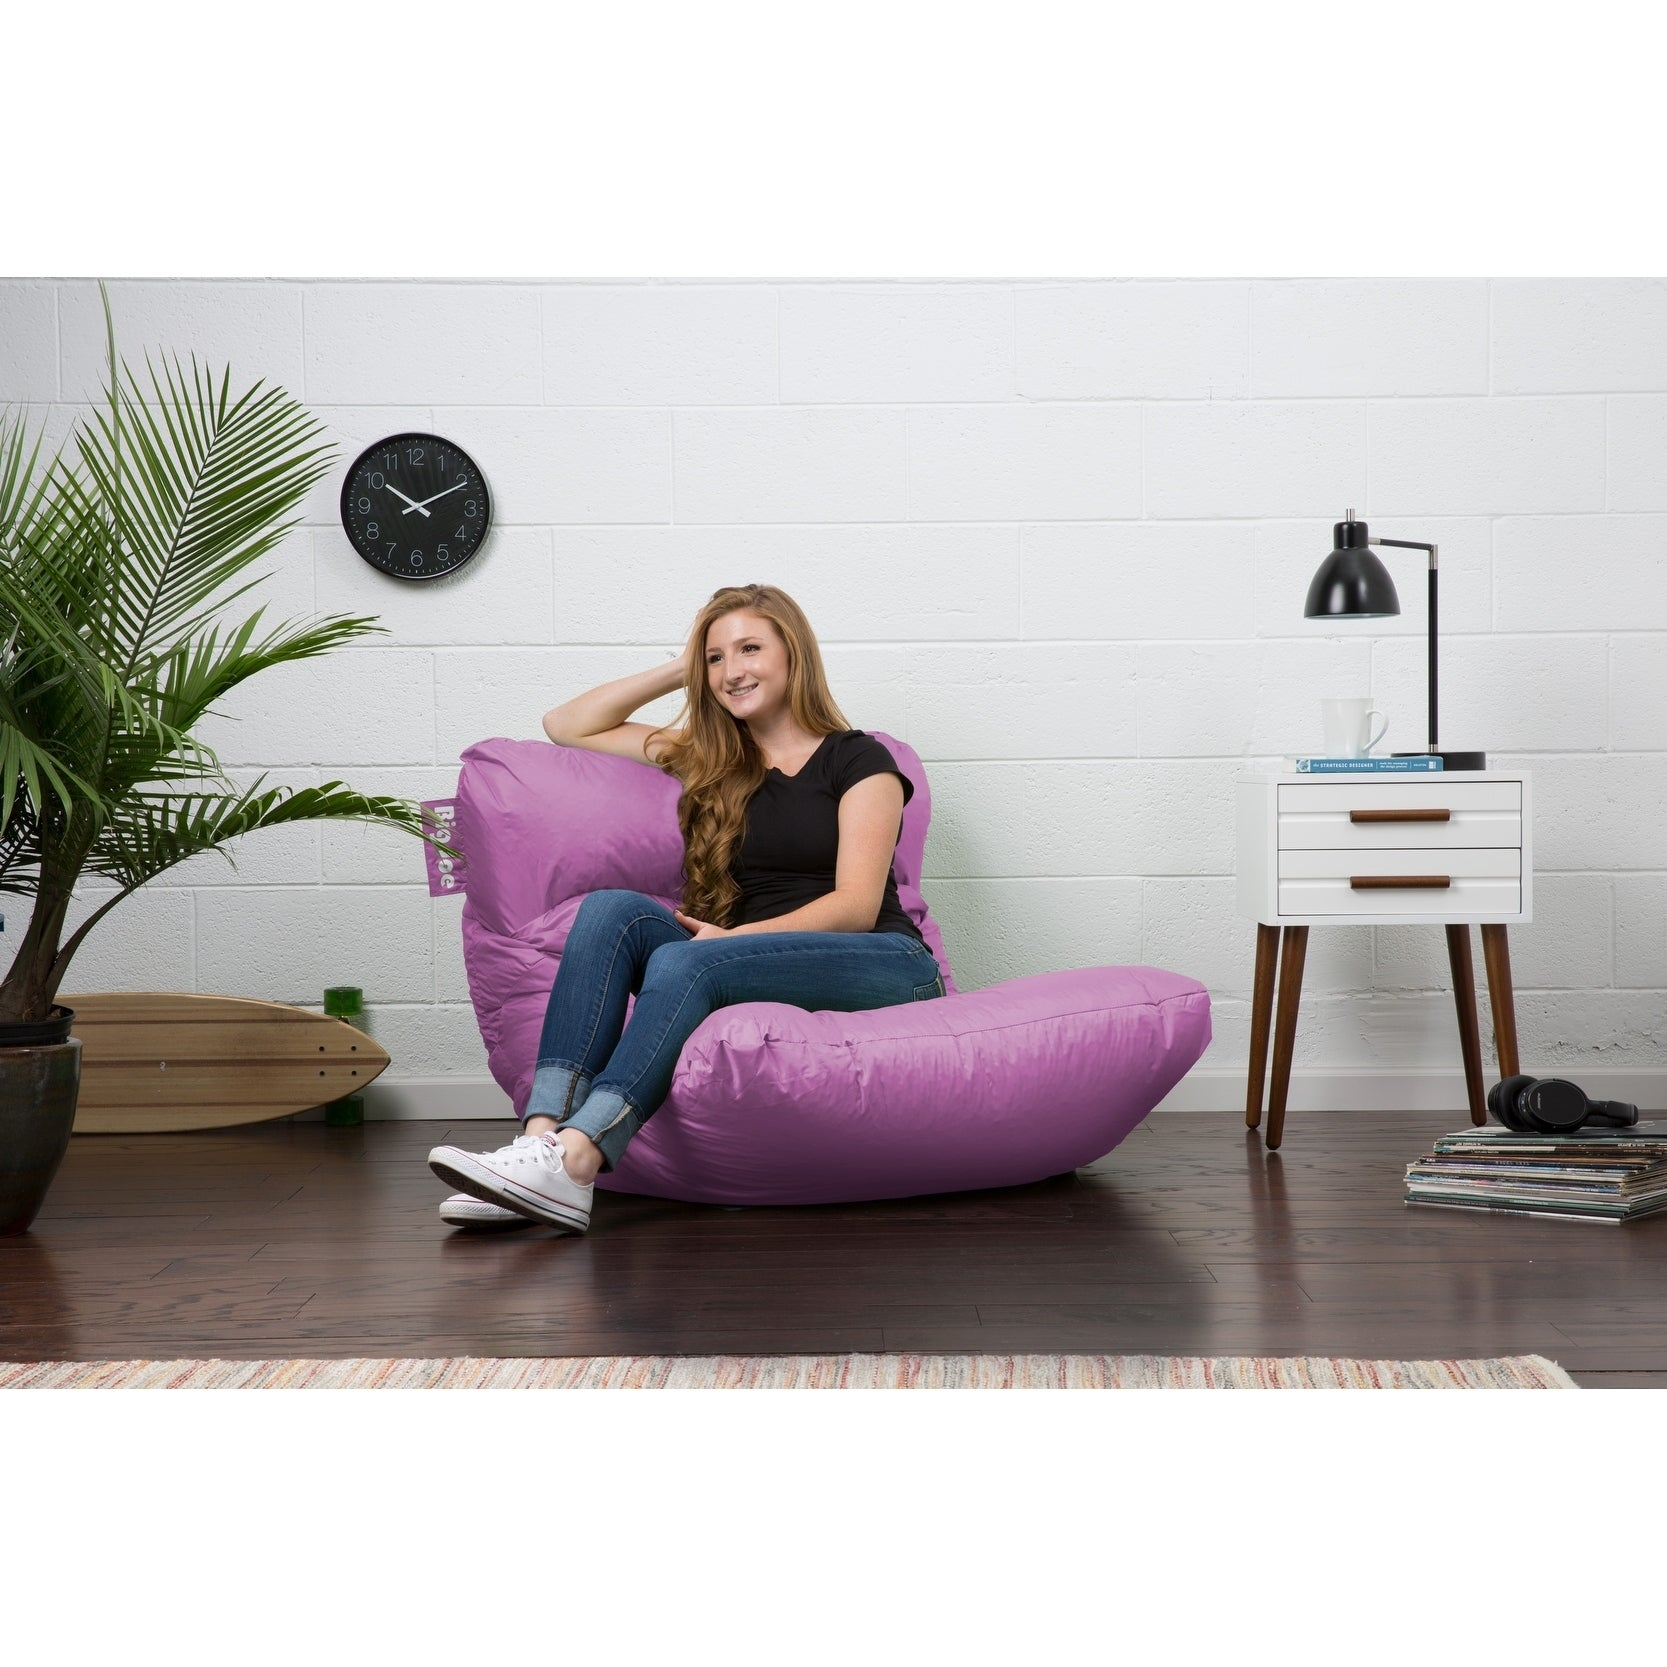 Joe Roma Bean Bag Chair Smartmax